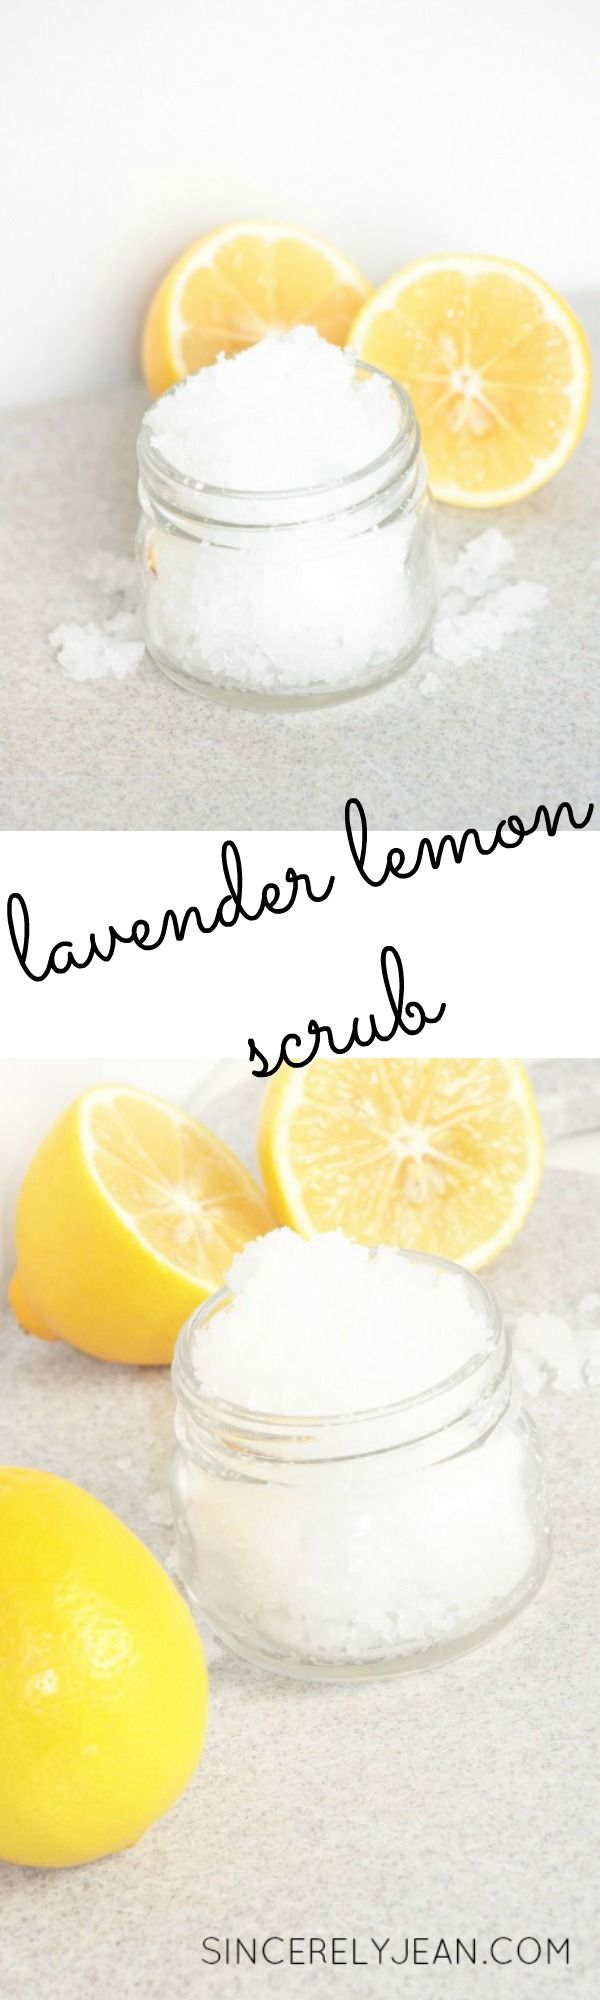 Lavender Lemon Salt Scrub - Step by step tutorial on how to make your own salt scrub | www.sincerelyjean.com